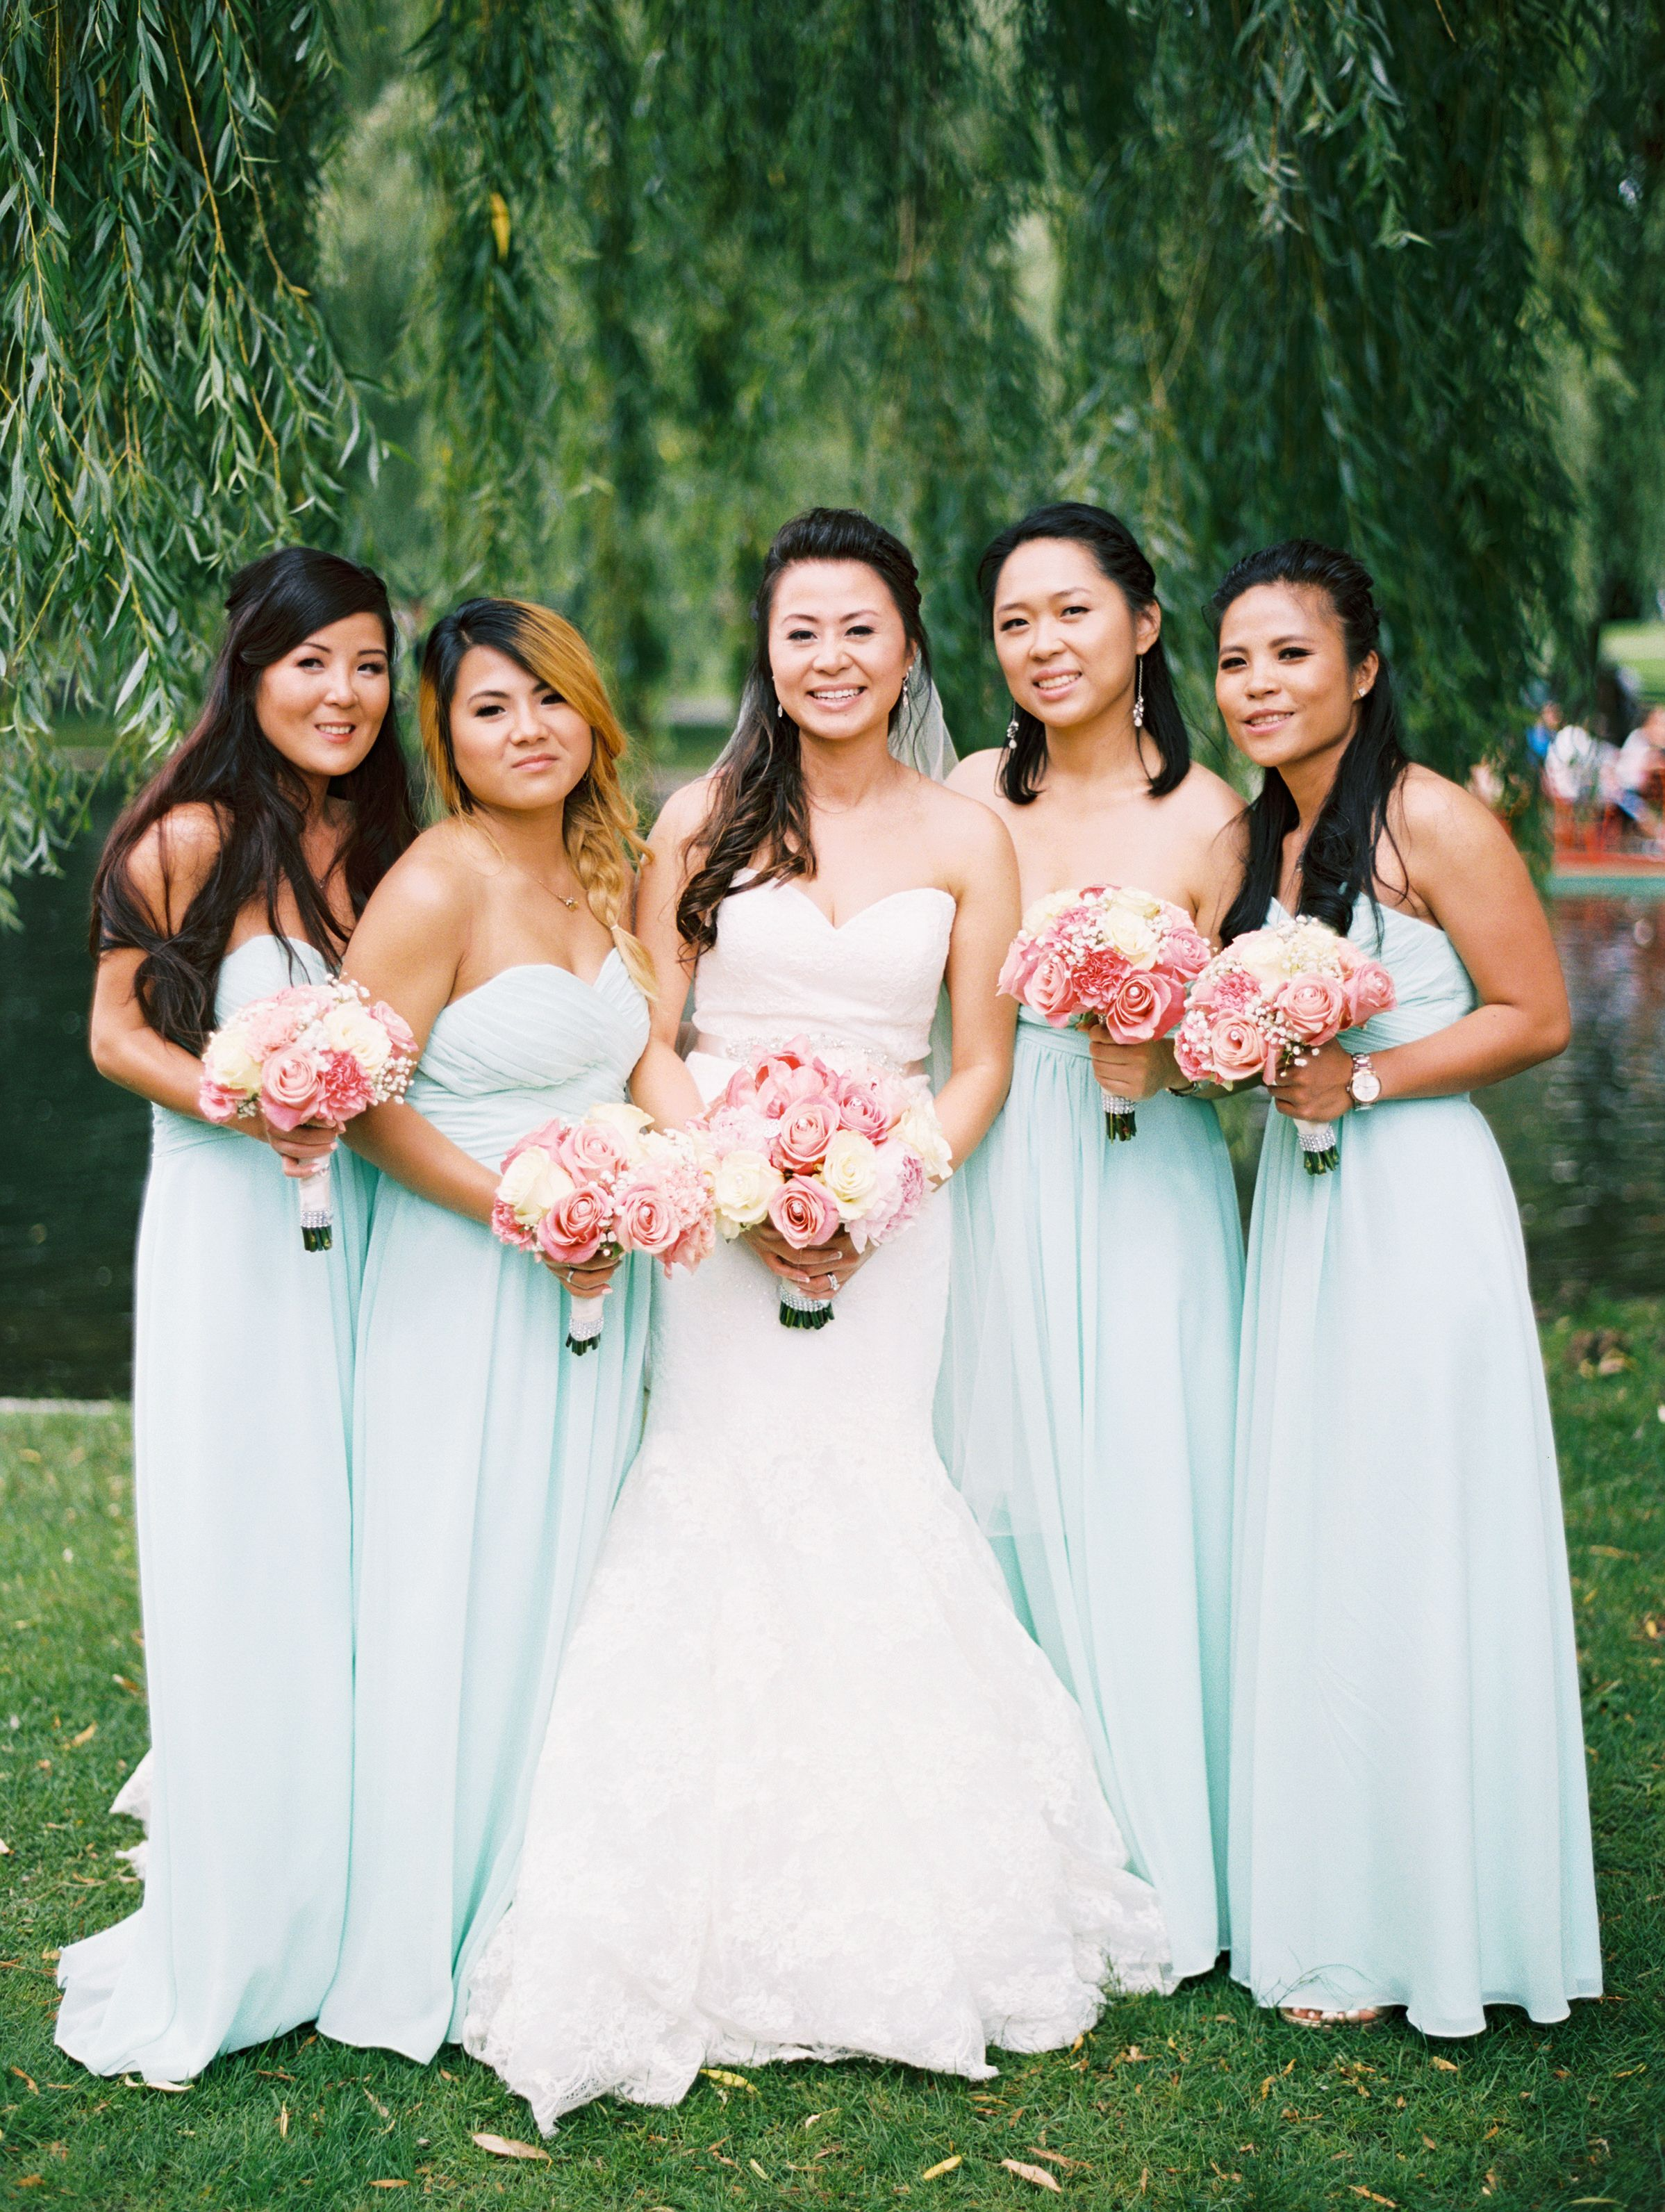 15de8b5c4e92 Long, Mint Azazie Bridesmaid Gowns | Bridesmaids | Azazie bridesmaid ...